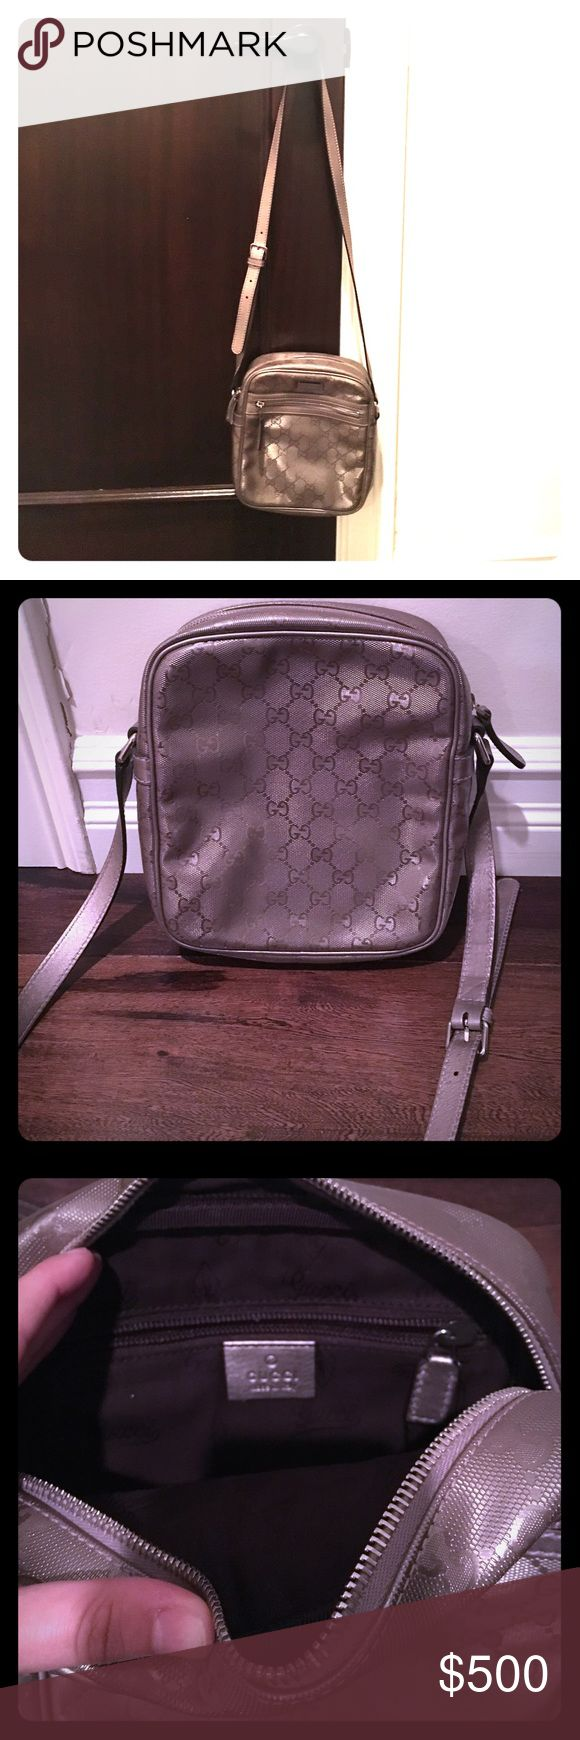 Authentic Gucci messenger bag NWT Gucci messenger bag in grey/silver. Has the gucci pattern on it Gucci Bags